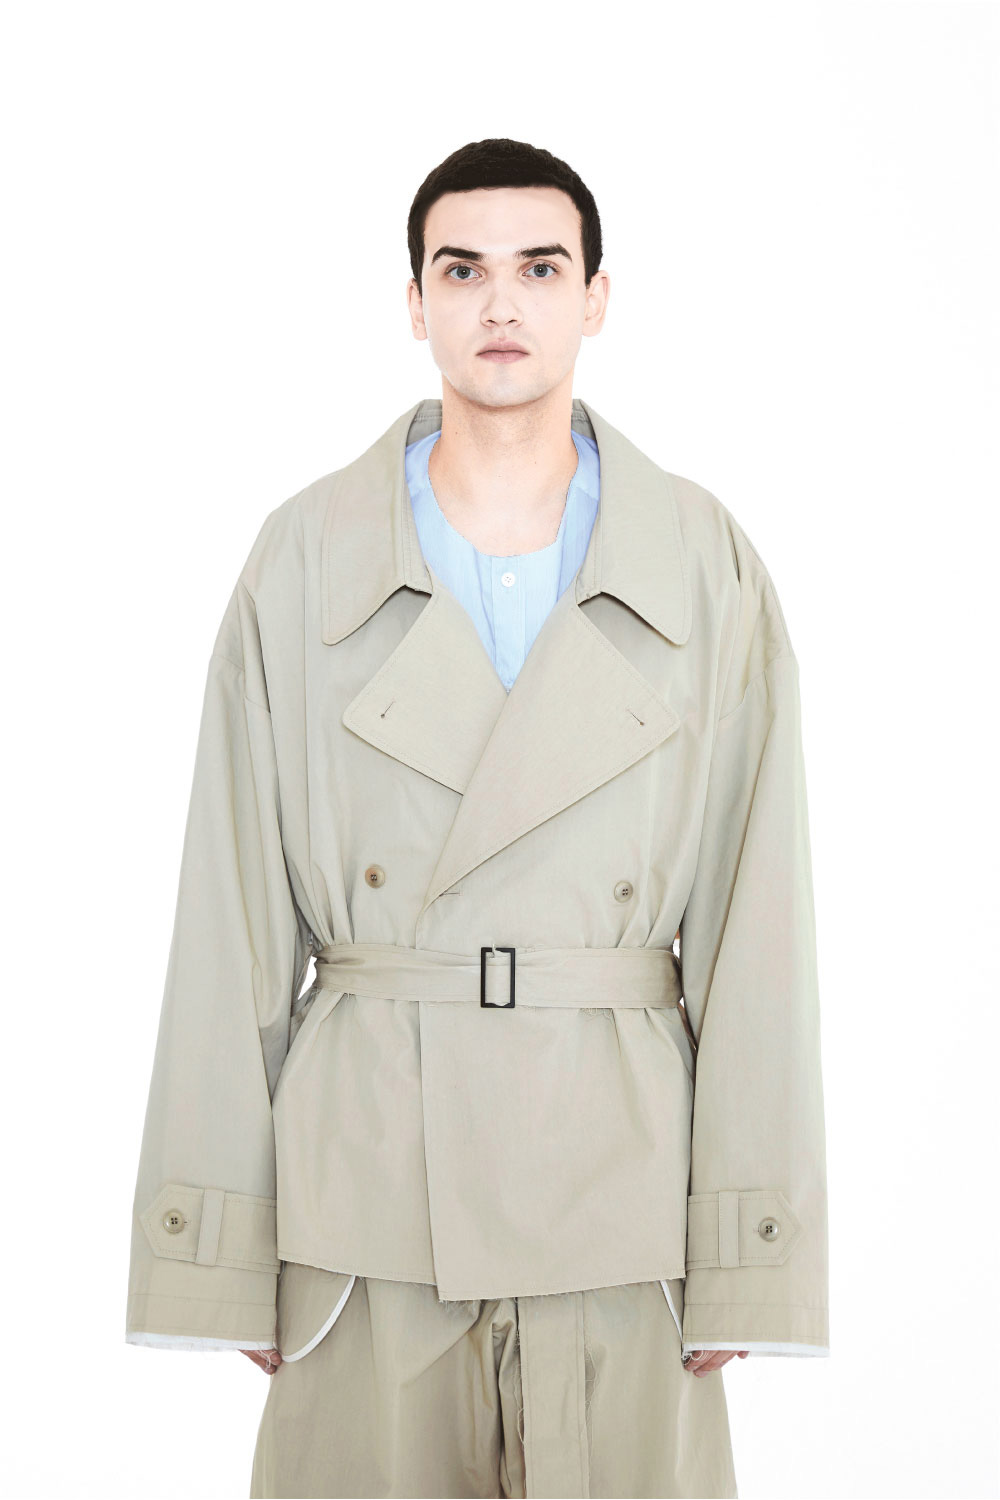 S/S19 SET SHORT TRECH COAT